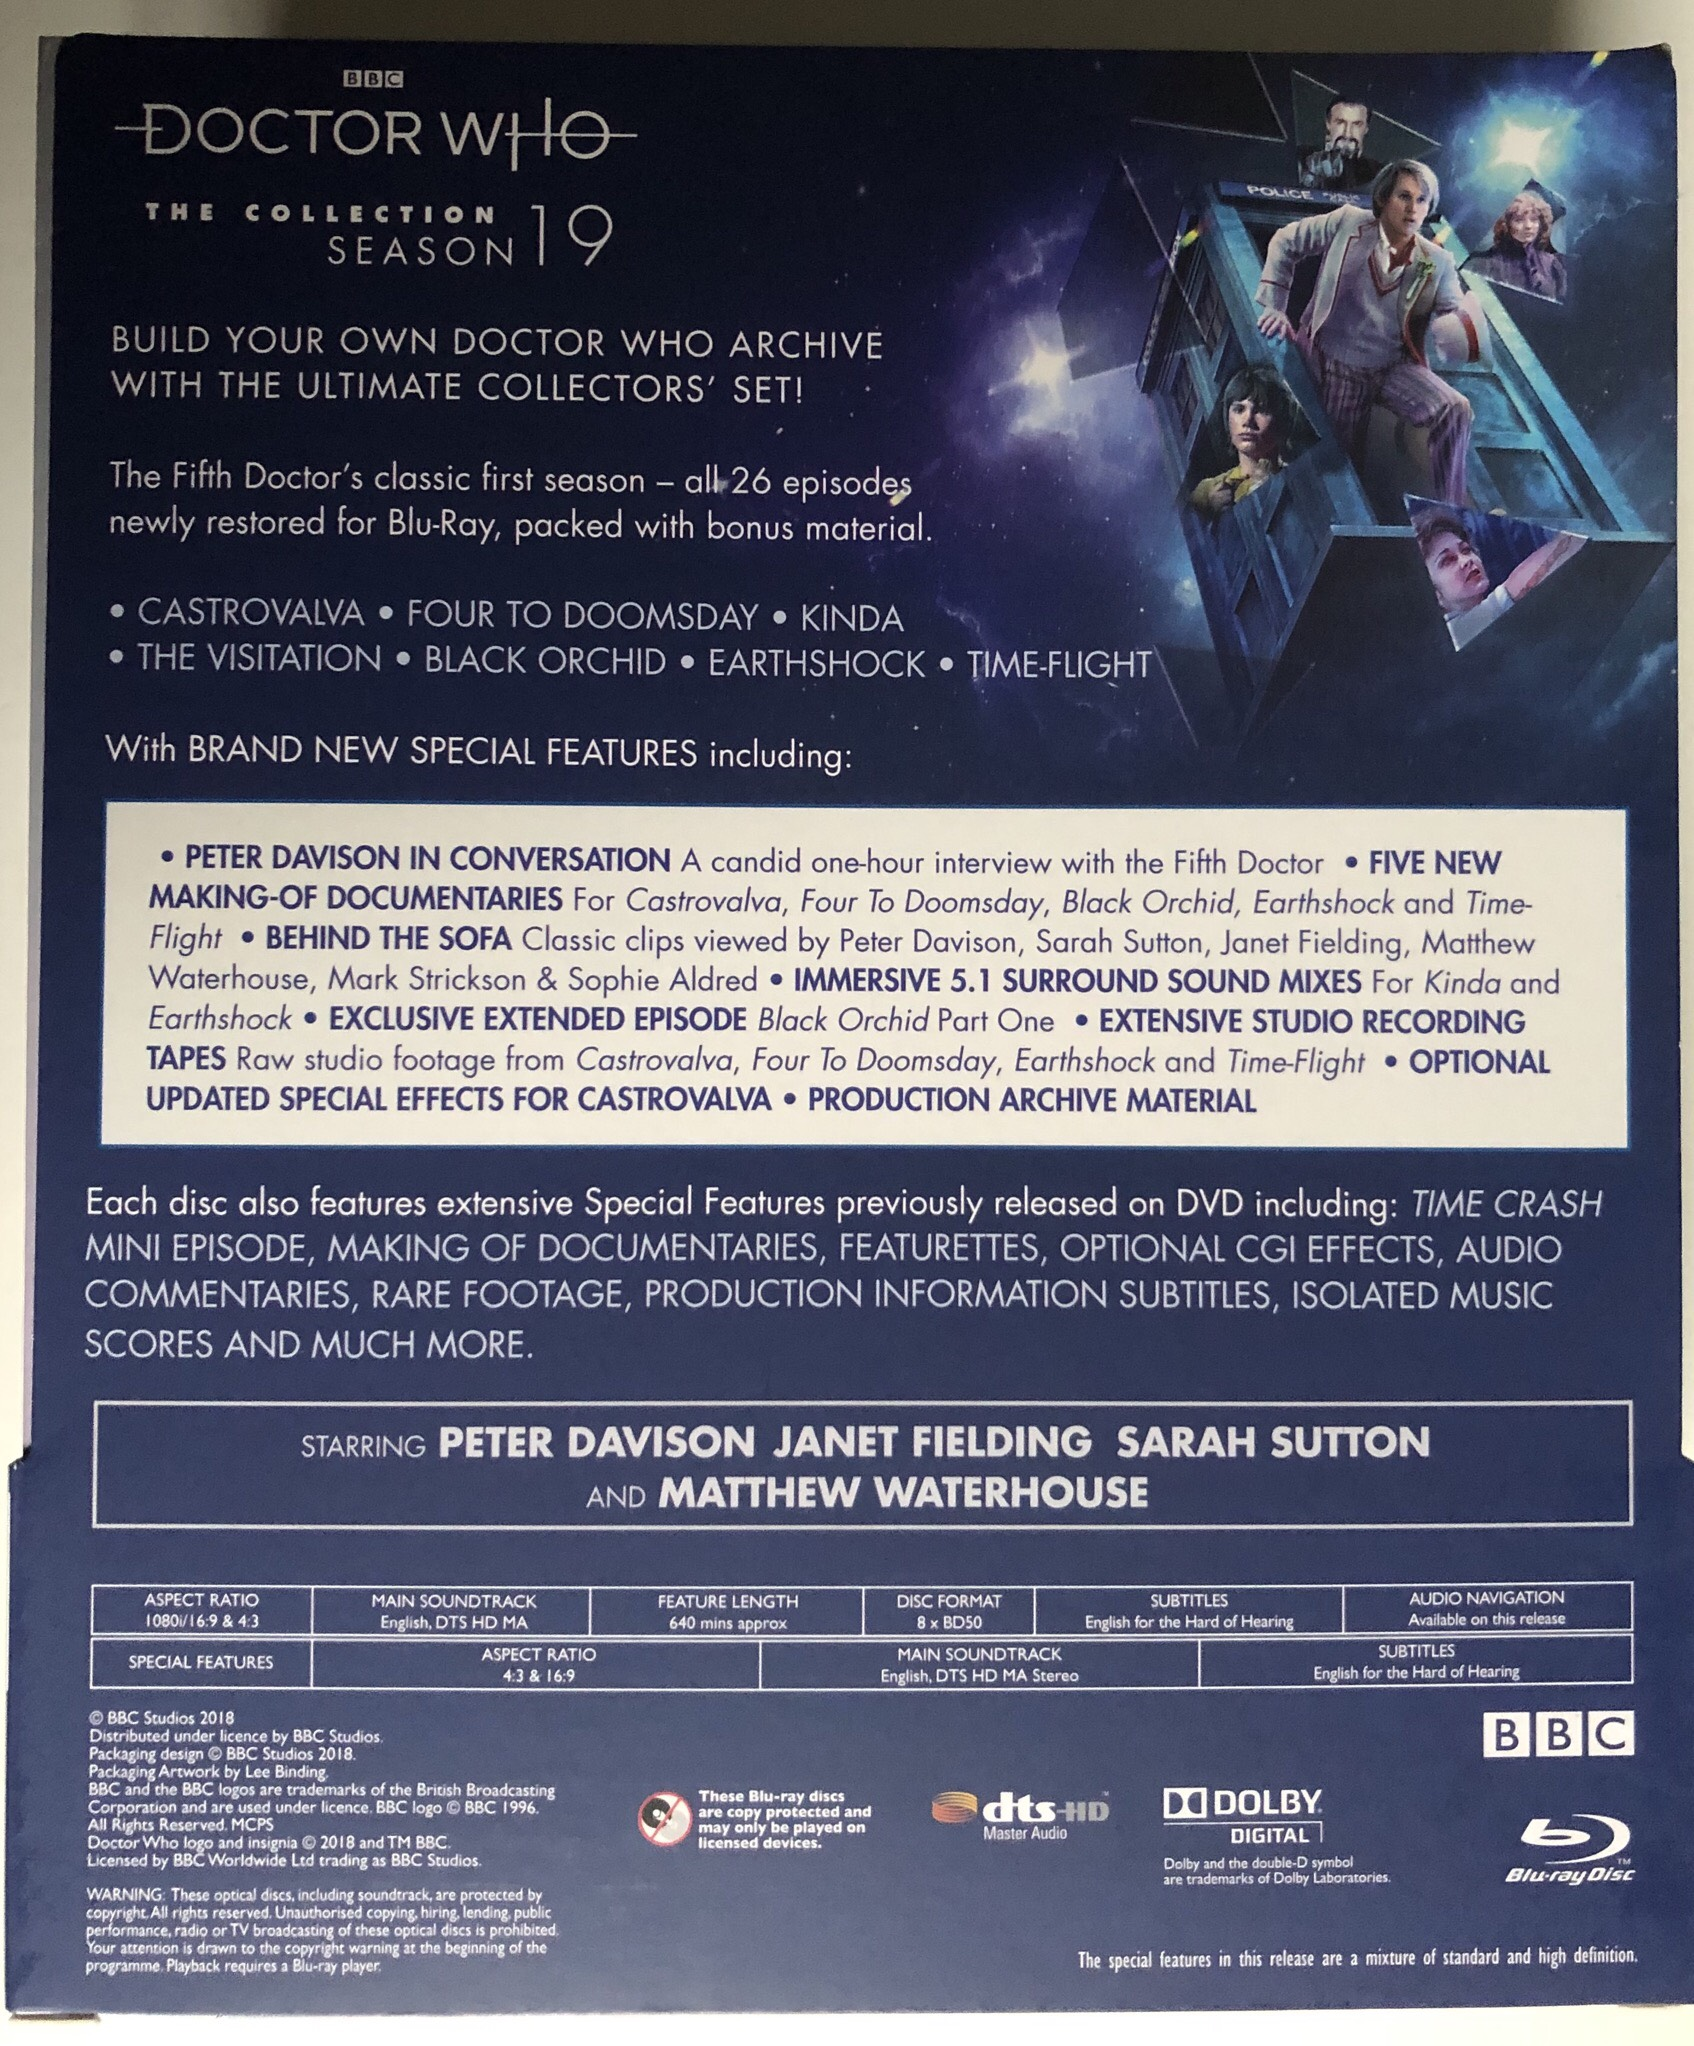 Doctor Who Season 19 Blu Ray Review – Part 2! (Unboxing